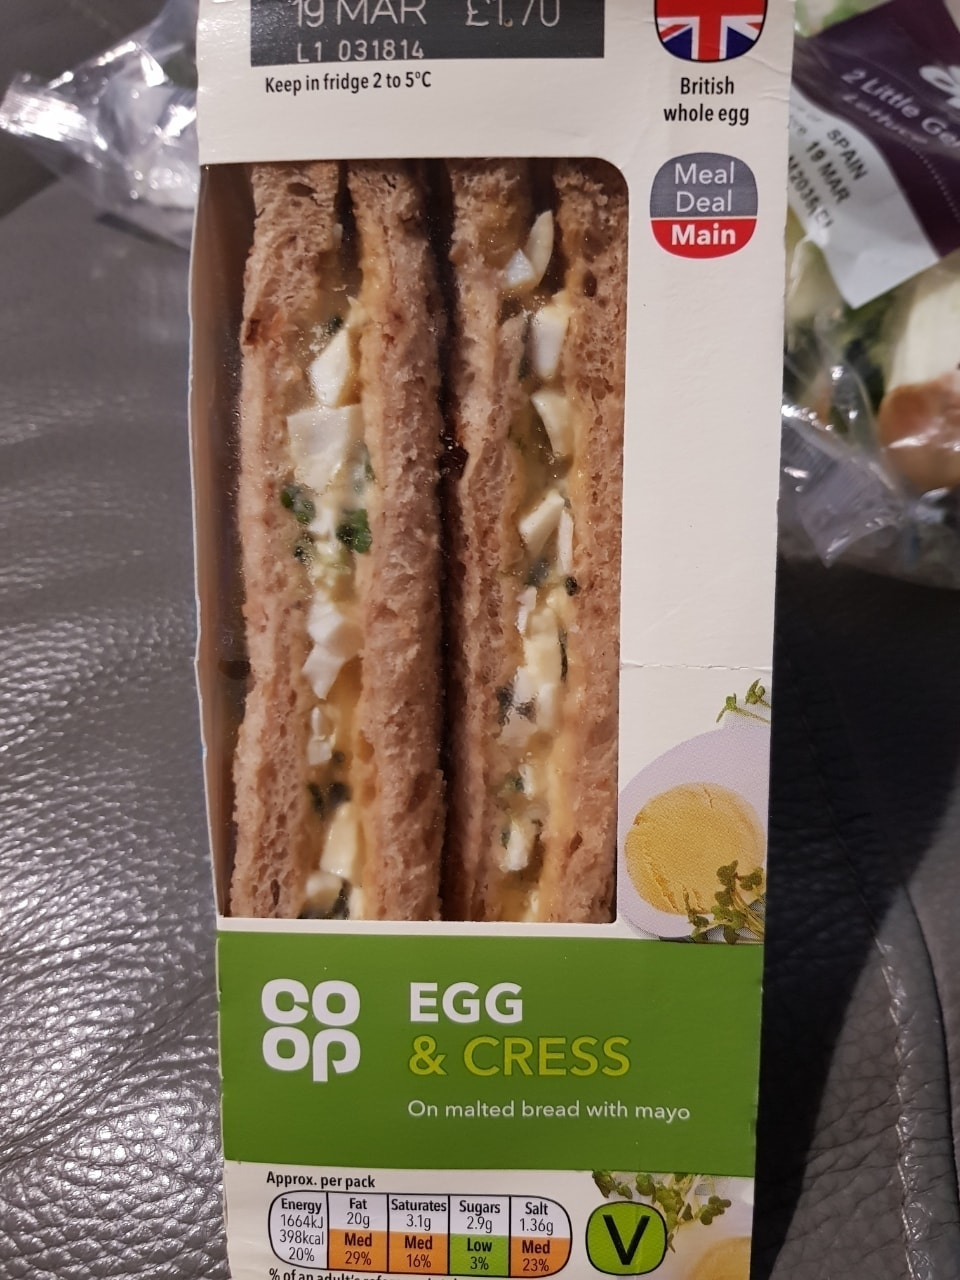 Egg and cress- must collect tonight before 10.30pm